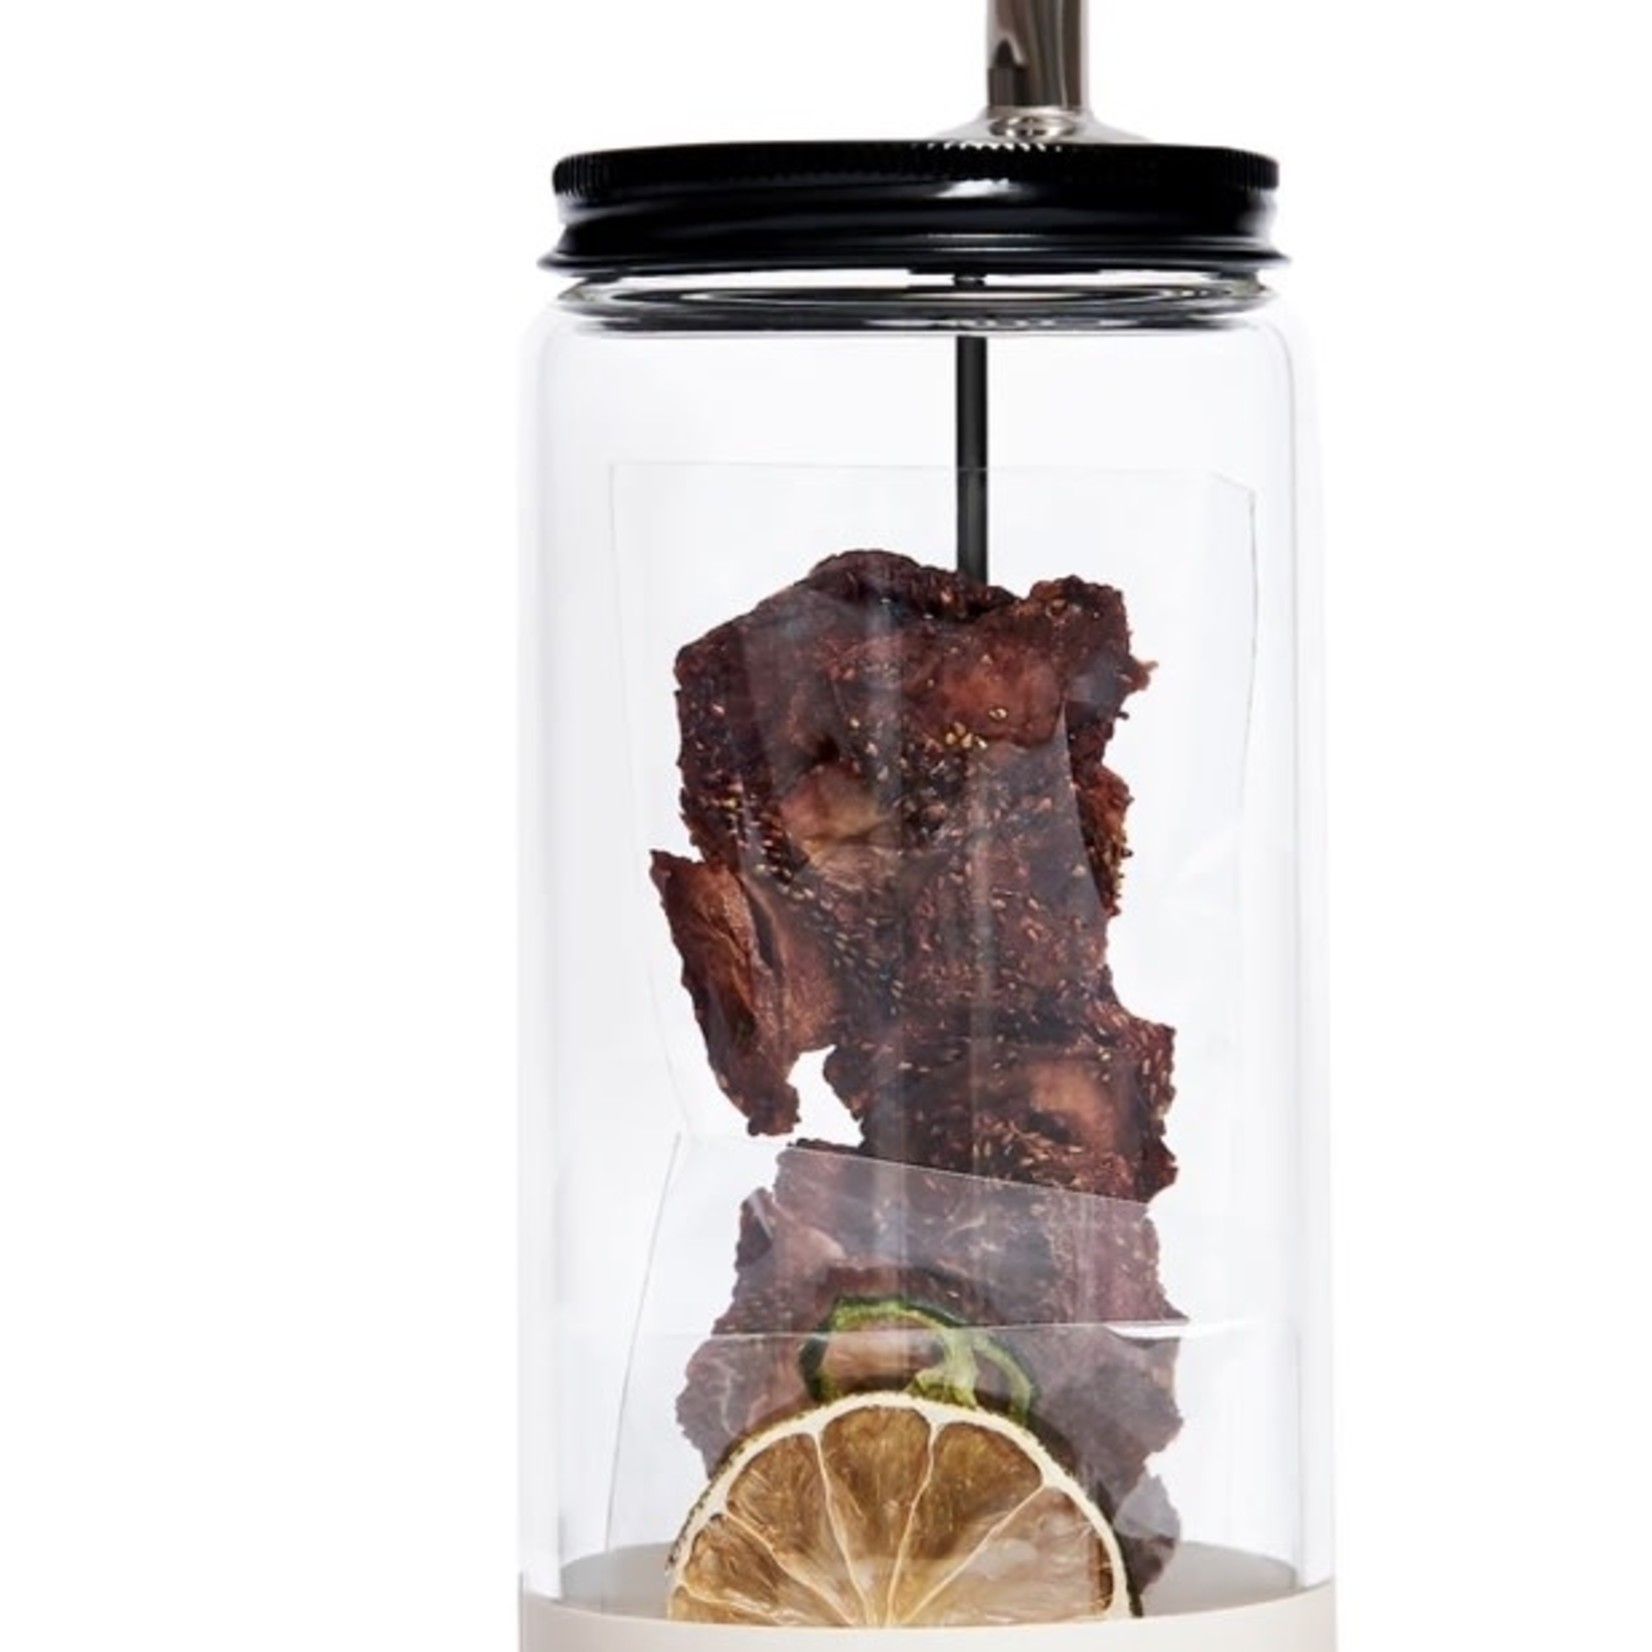 Aged & Infused Alcohol Infusion Kit